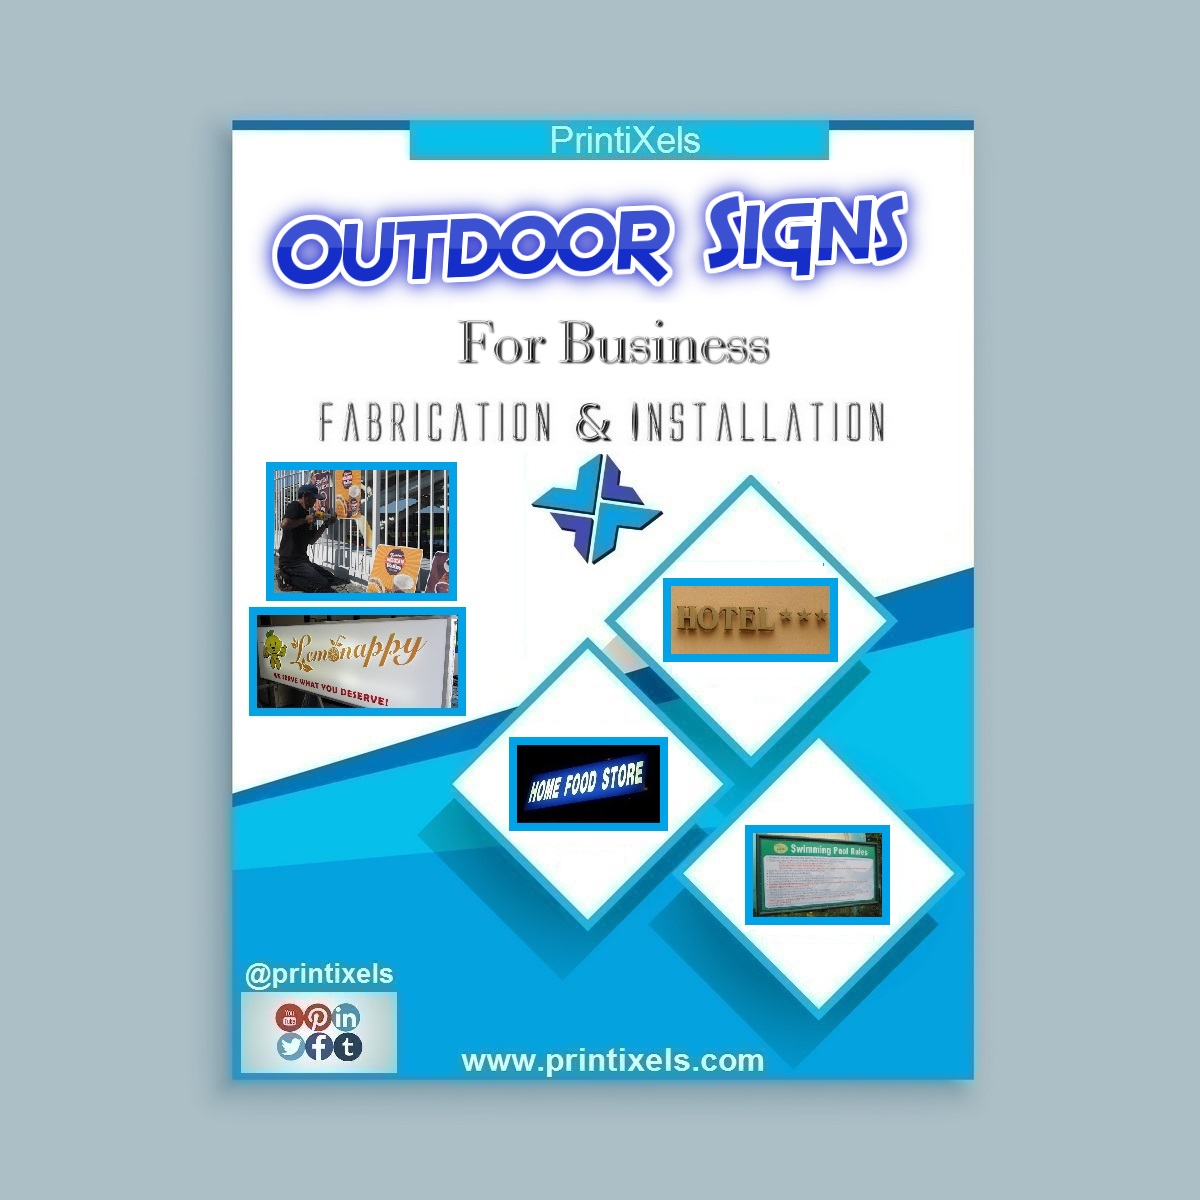 Outdoor Signs For Business